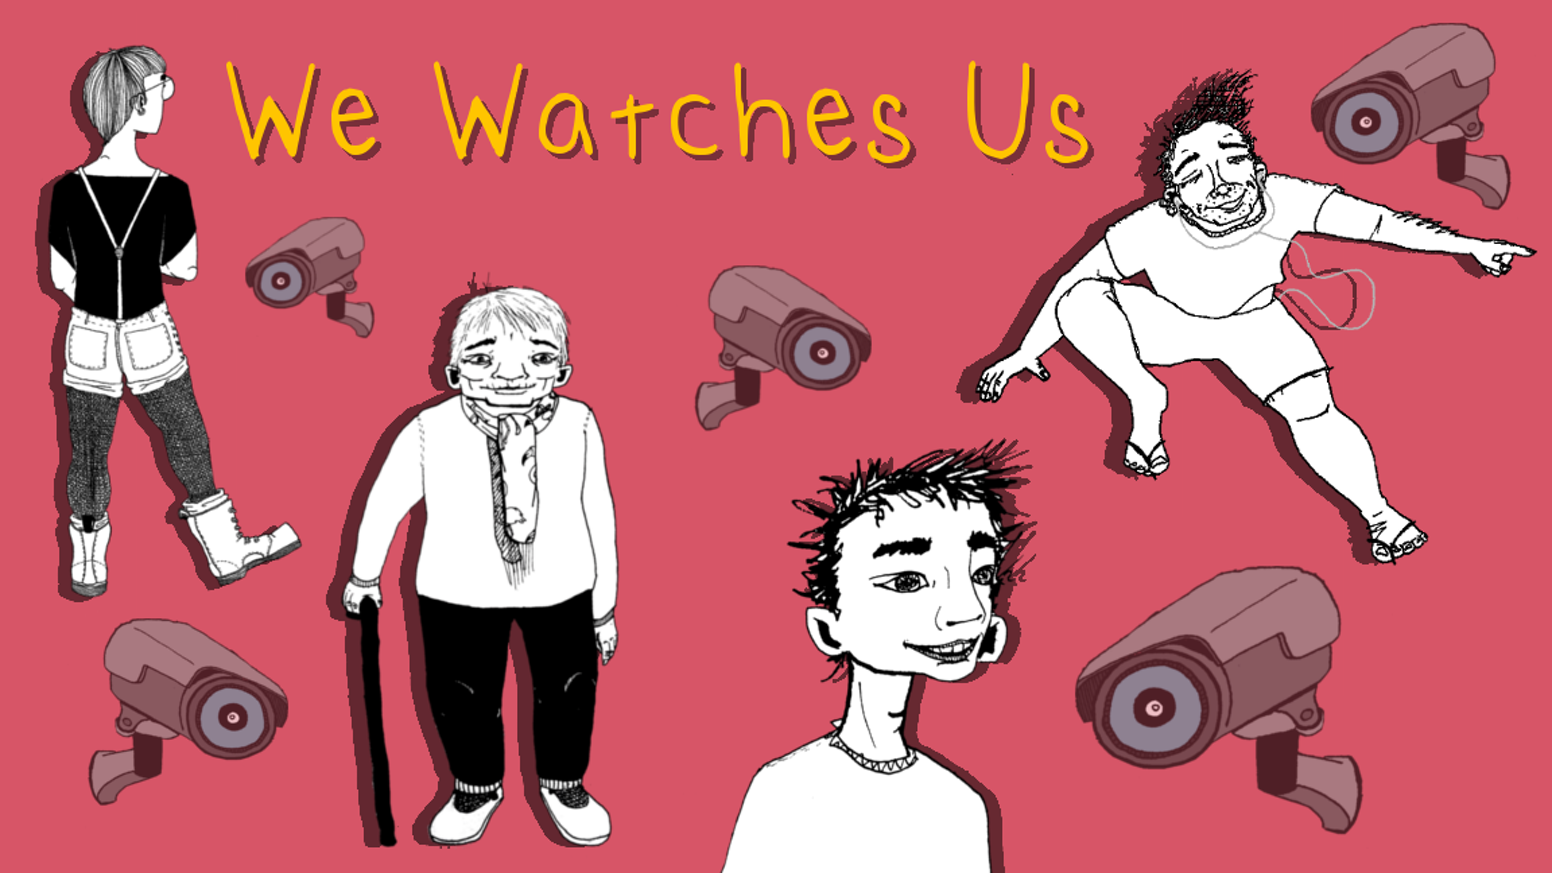 We Watches Us, a 66 page graphic novel about four artists living in a dystopian world inundated with ads and voyeuristic corporations.